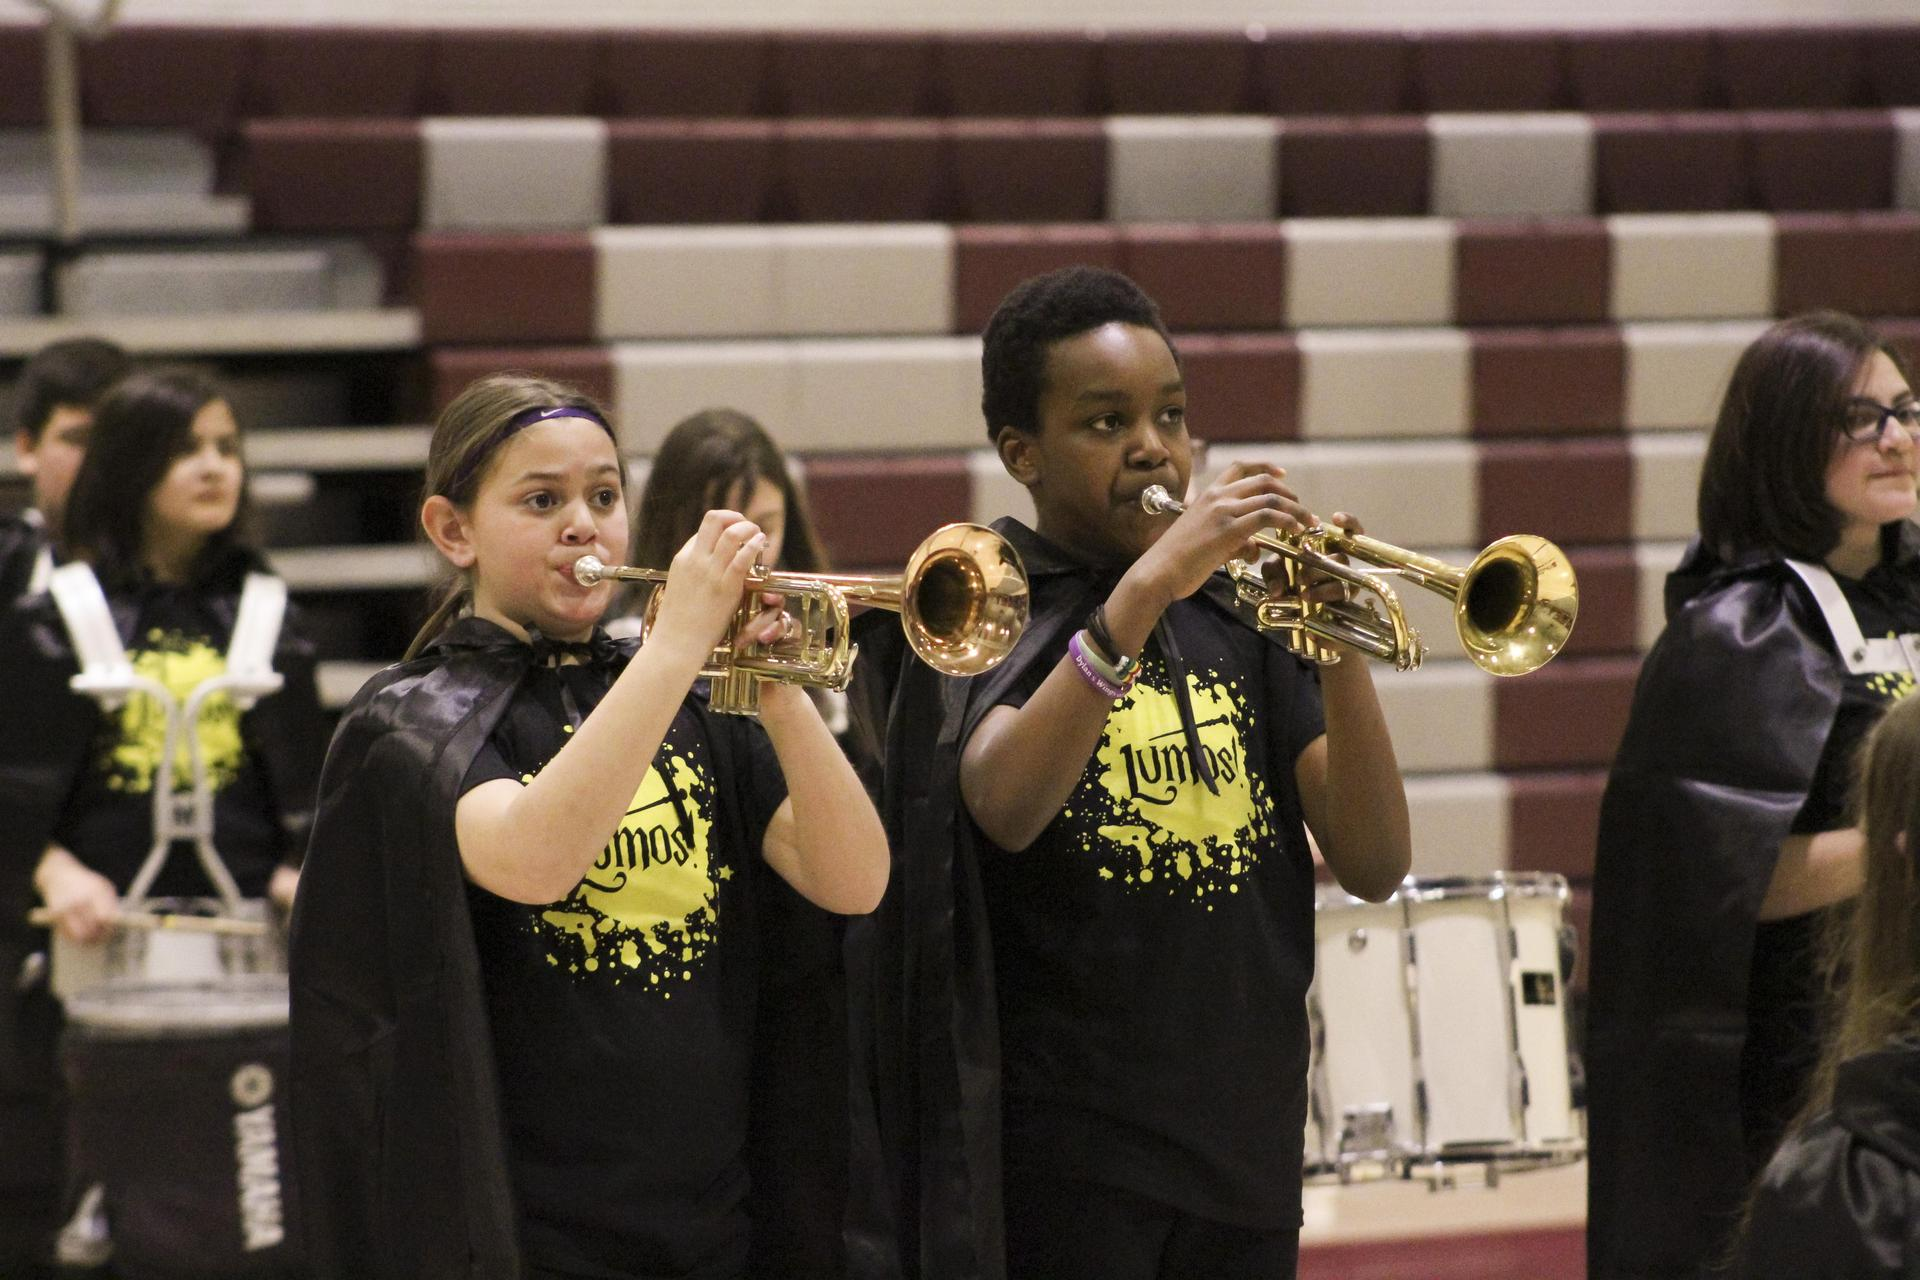 SoundSport trumpet players laying concert in high school gym